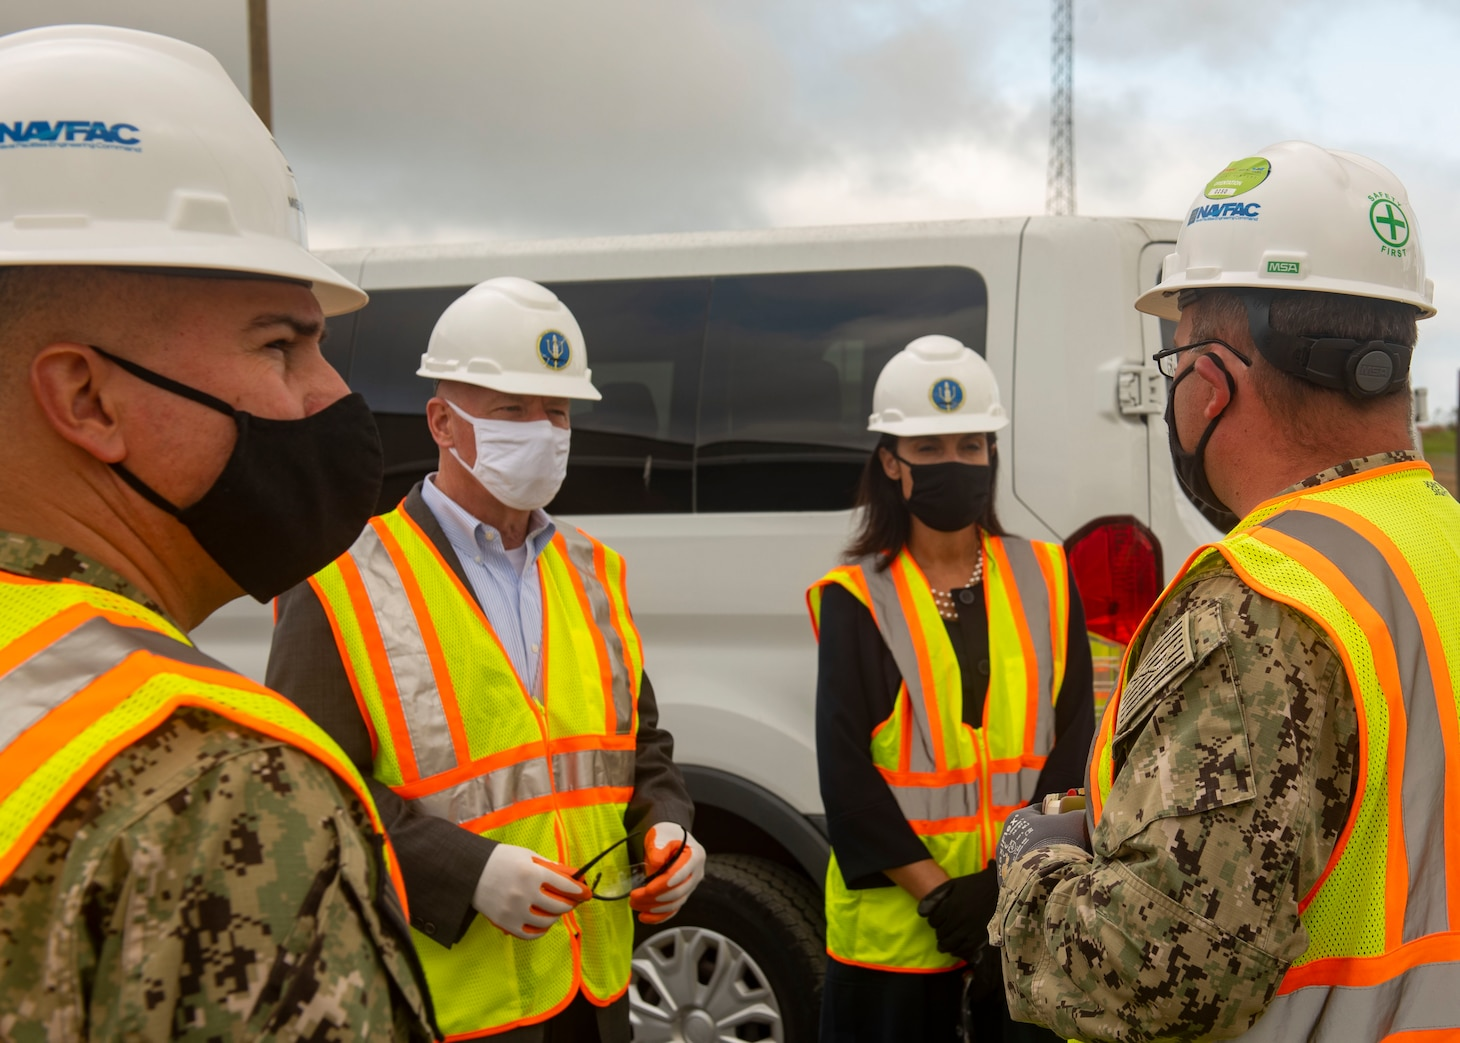 James Balocki, (center left) Acting Principal Deputy Assistant Secretary of the Navy for Energy, Installations & Environment , and Deborah Loomis, (center right) Senior Advisor to the Secretary of the Navy for Climate Change, are given a safety brief from Capt. Miguel Dieguez, (left) public works officer of Naval Submarine Base Kings Bay.